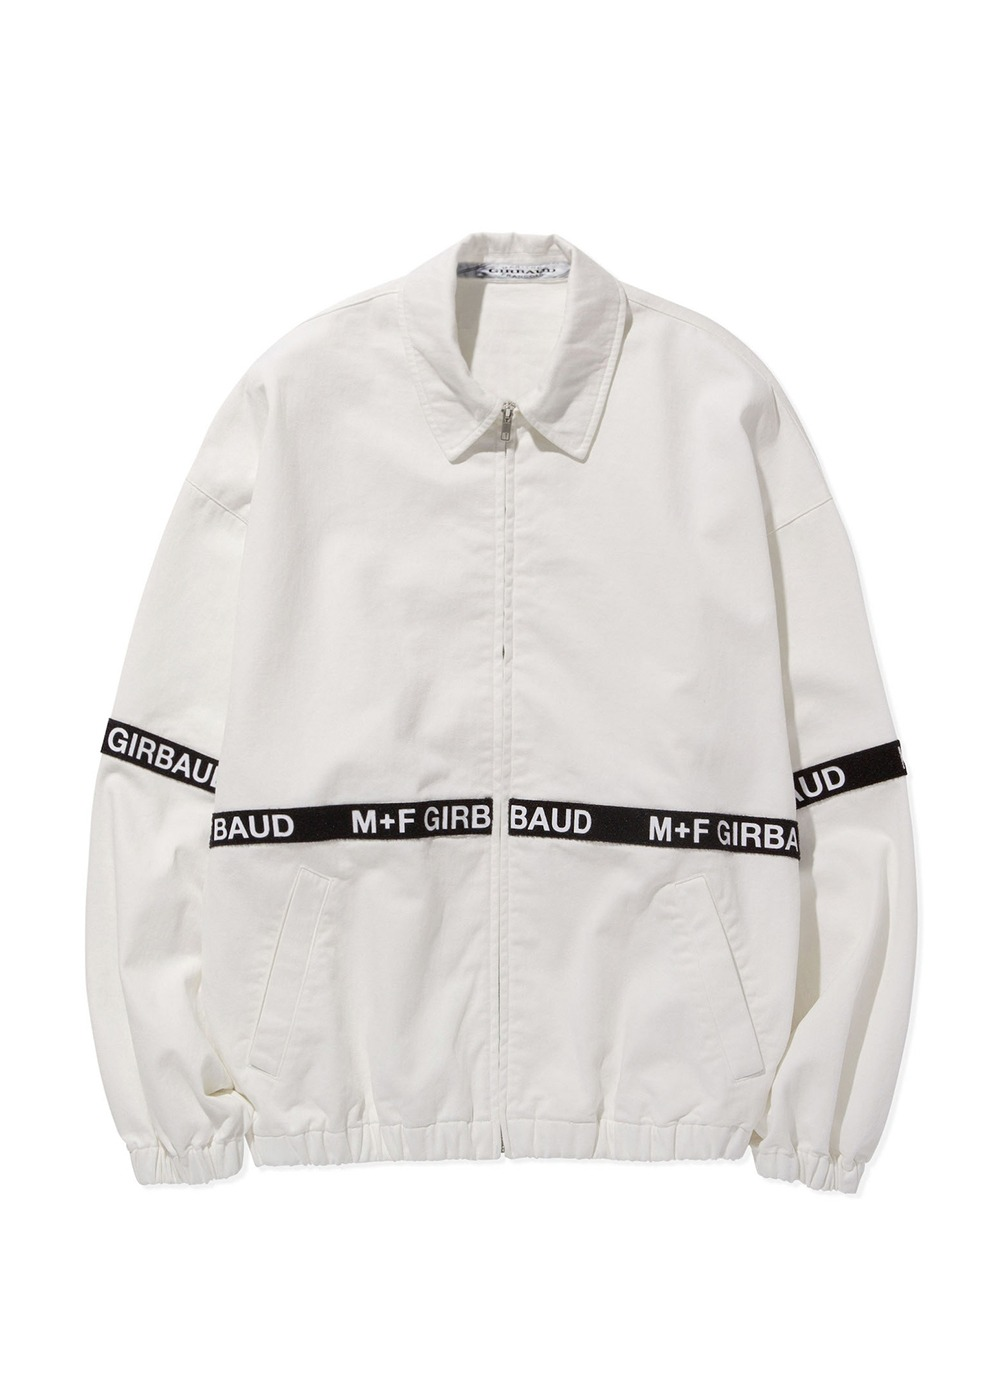 MARITHE SHUTTLE TAPE JACKET off white